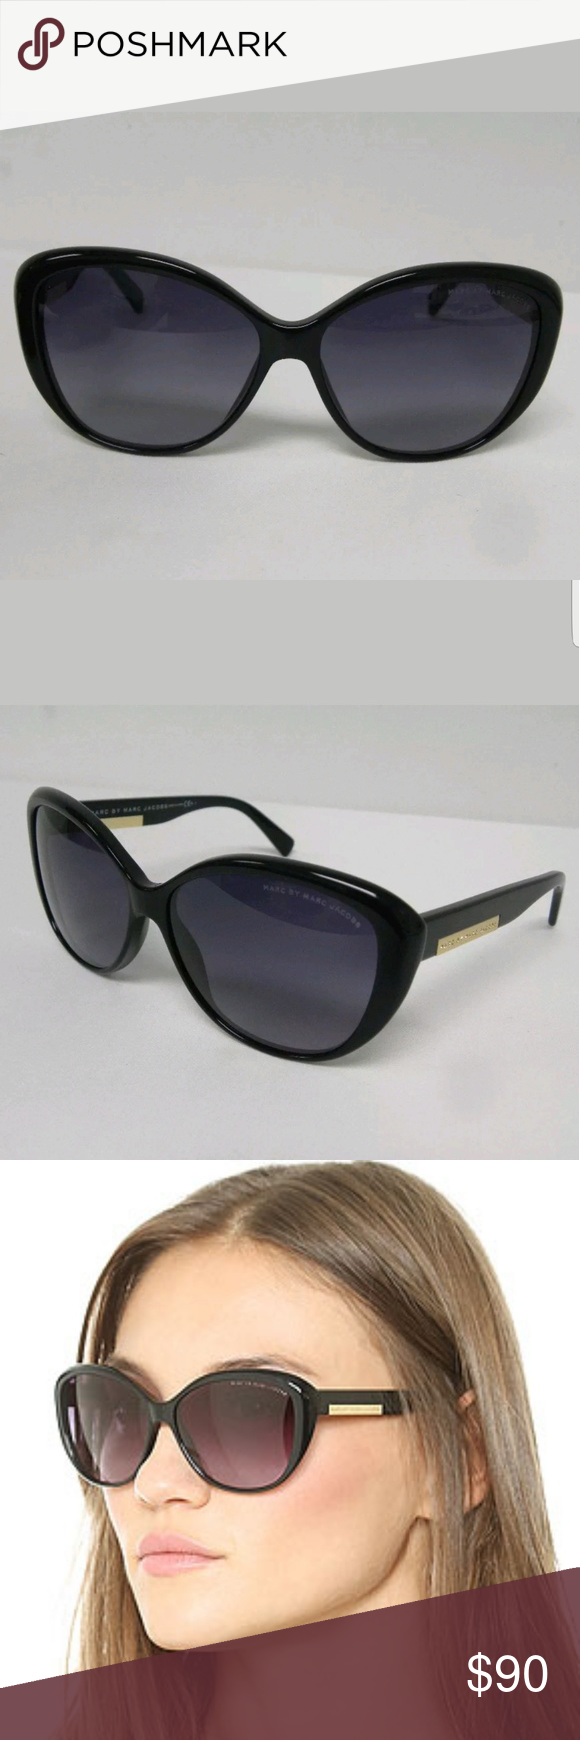 8d251a974a3 NWT Marc Jacobs Cat eye Big Sunglasses NWT Marc by marc jacobs sunglasses  MMJ 443 s 807 HD 58 140. Original black leather case. No cloth. Uv  protection.